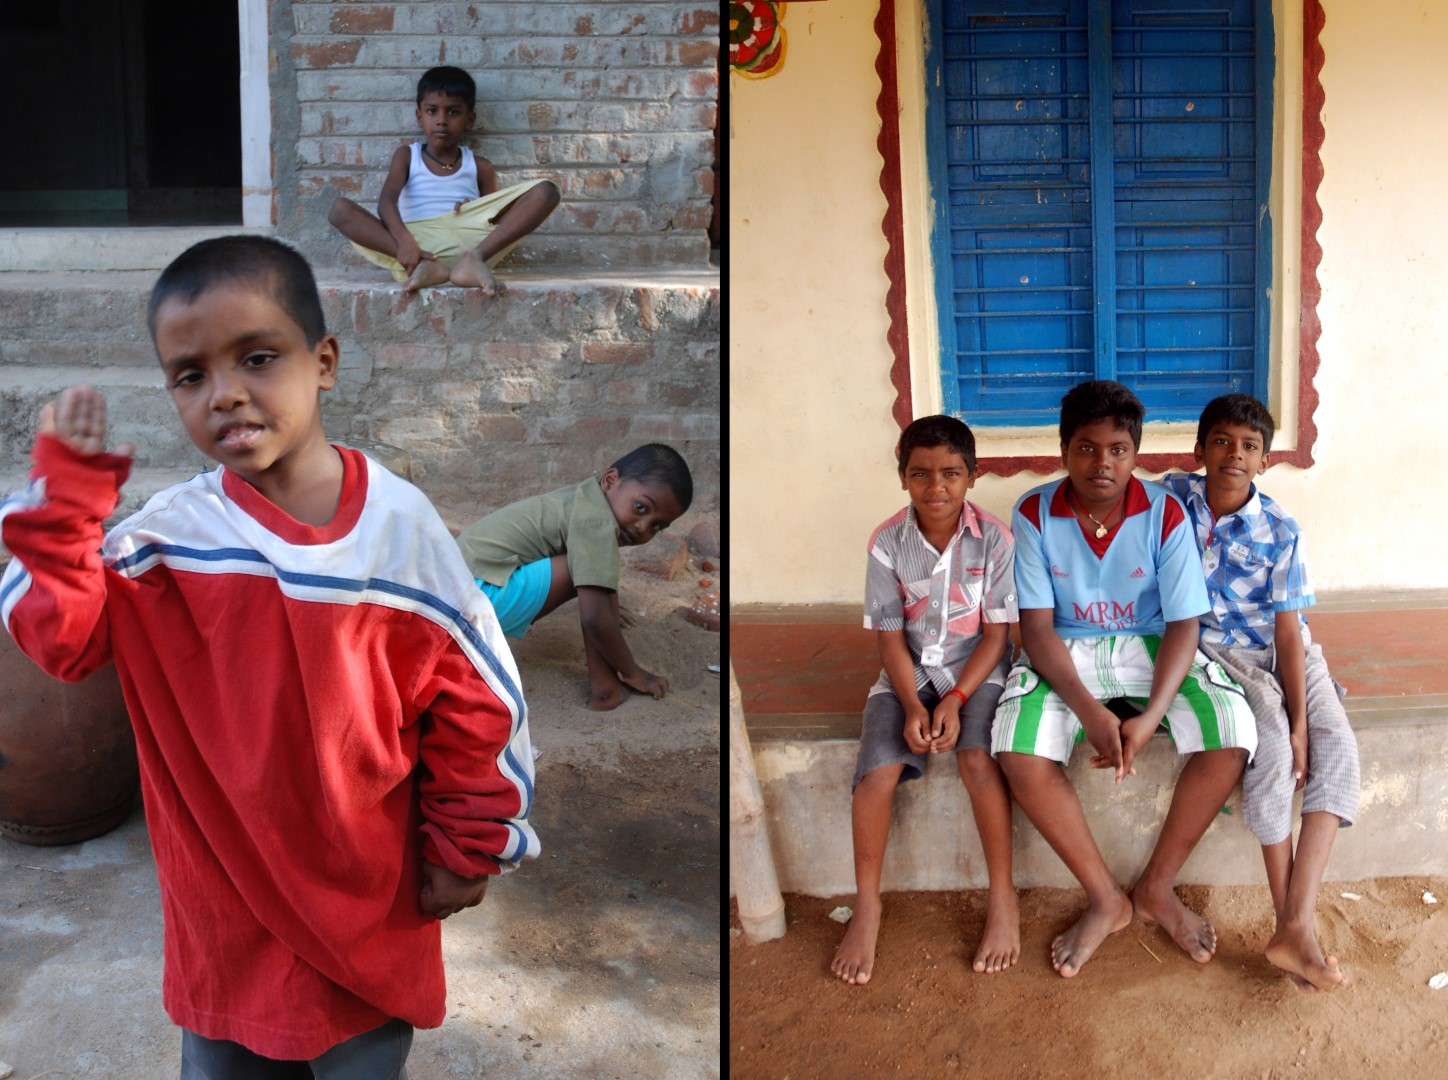 Cousin-brothers, best friends or both? Nagalingam, Shankar and Vishwanathan in 2008 and in 2014